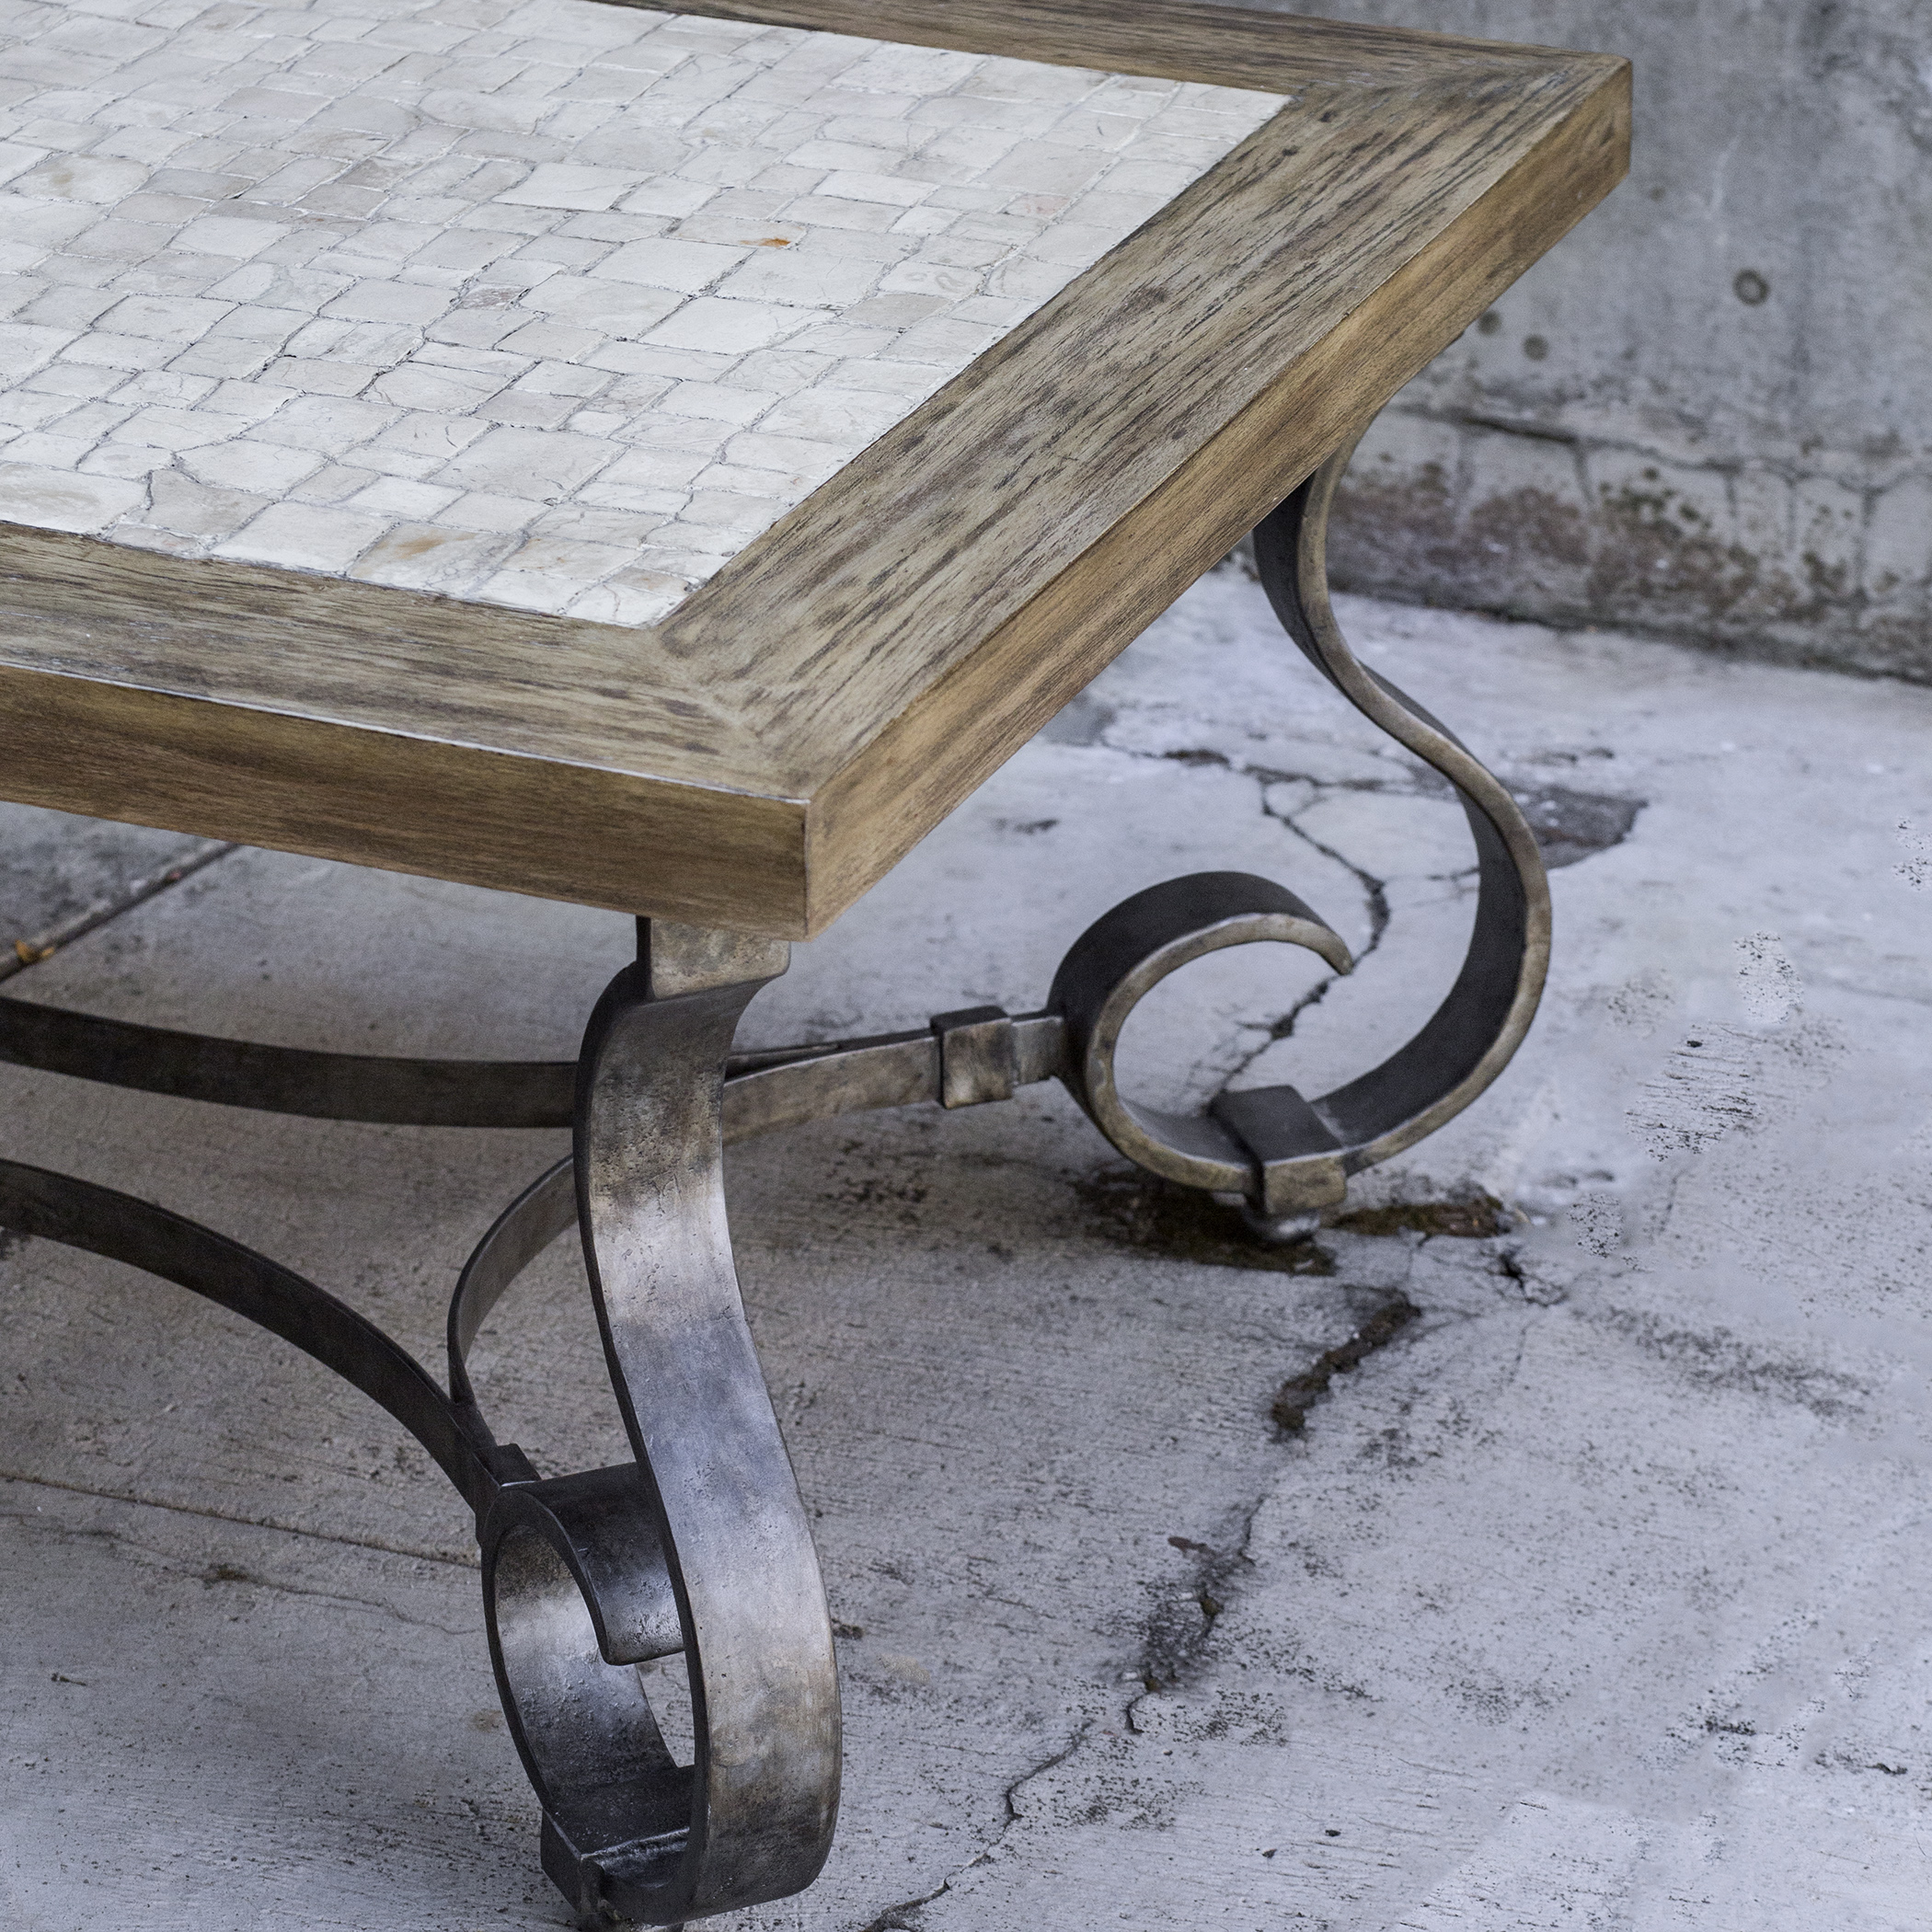 Rustic Scroll: Iron Scroll Leg Rustic Cottage Wood Coffee Table